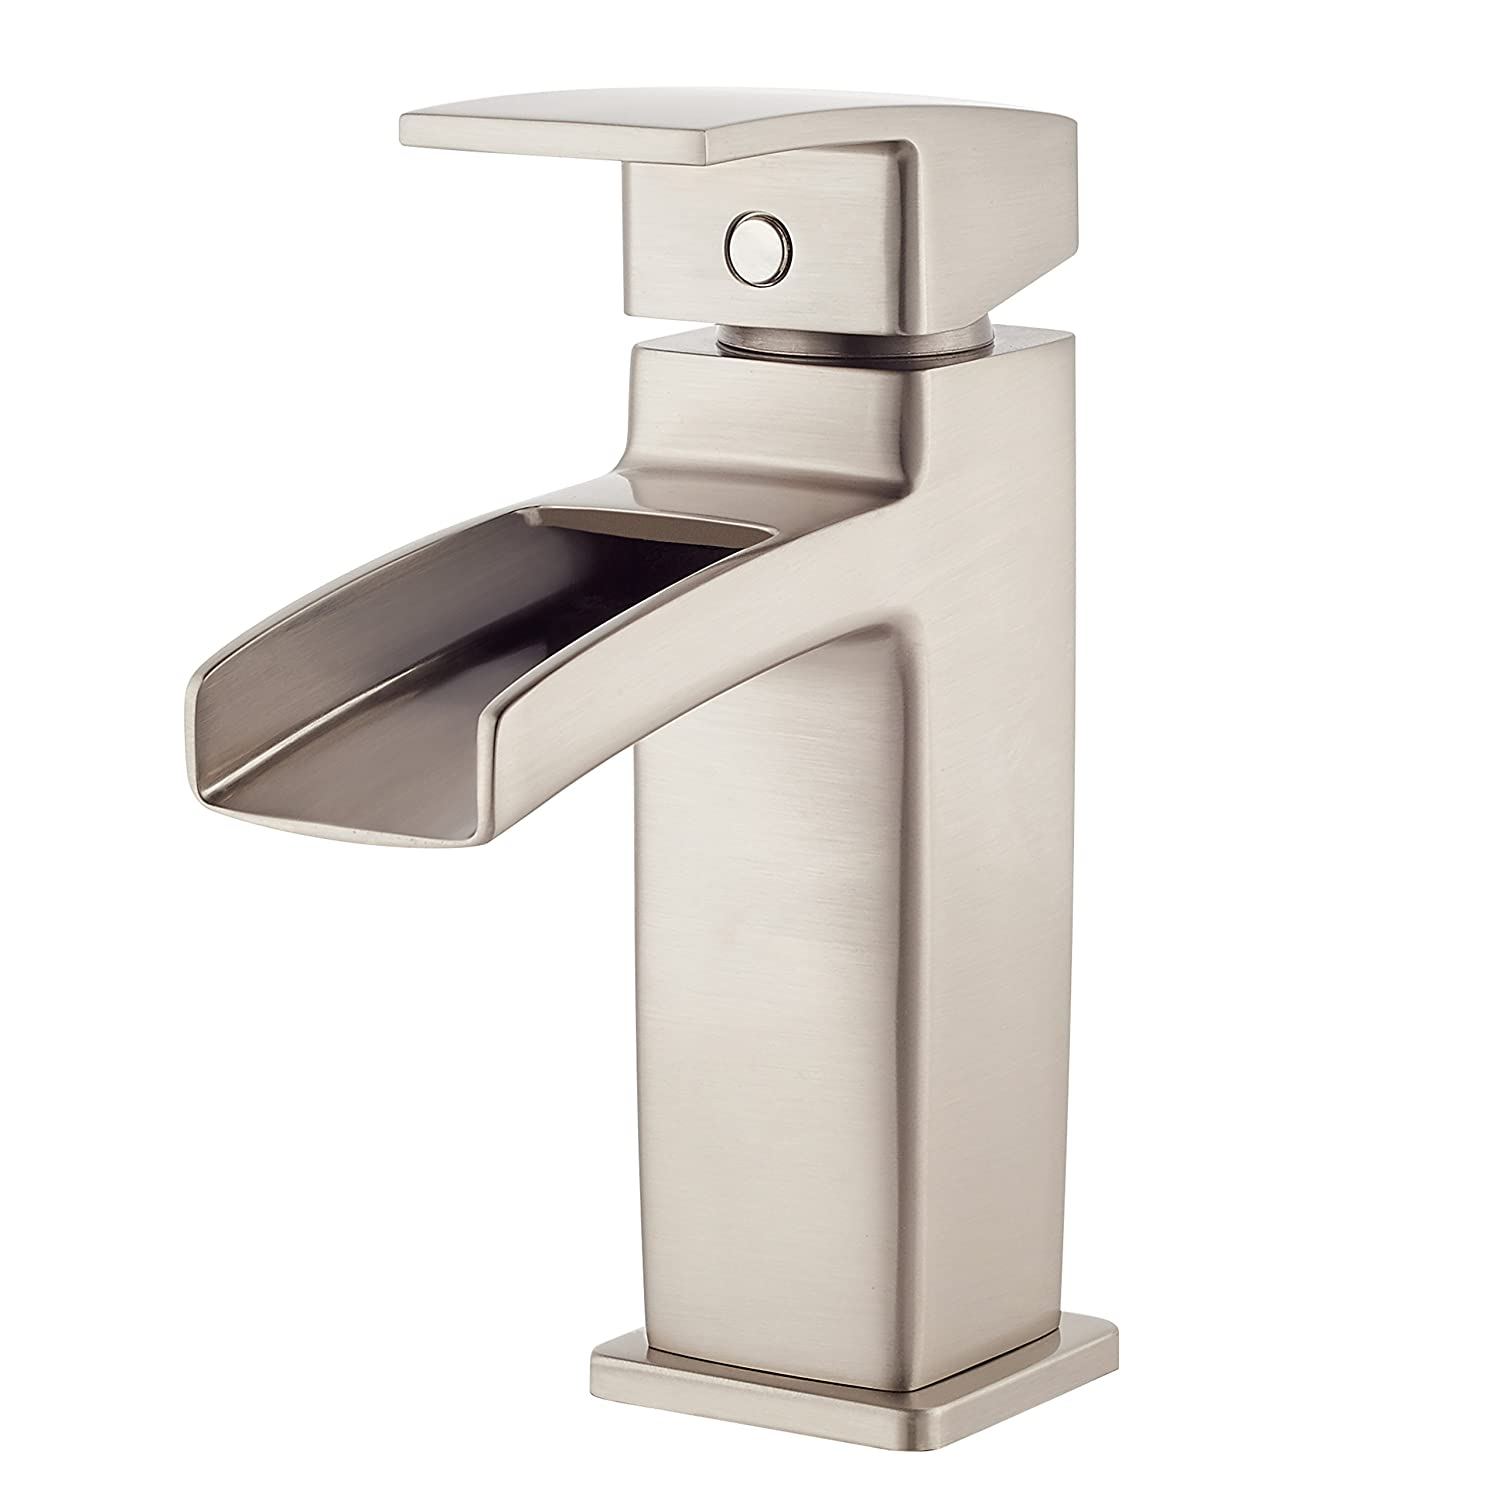 Pfister LG42DF0K Kenzo Single Control Waterfall 4 Inch Centerset Bathroom Faucet in Brushed Nickel, Water-Efficient Model